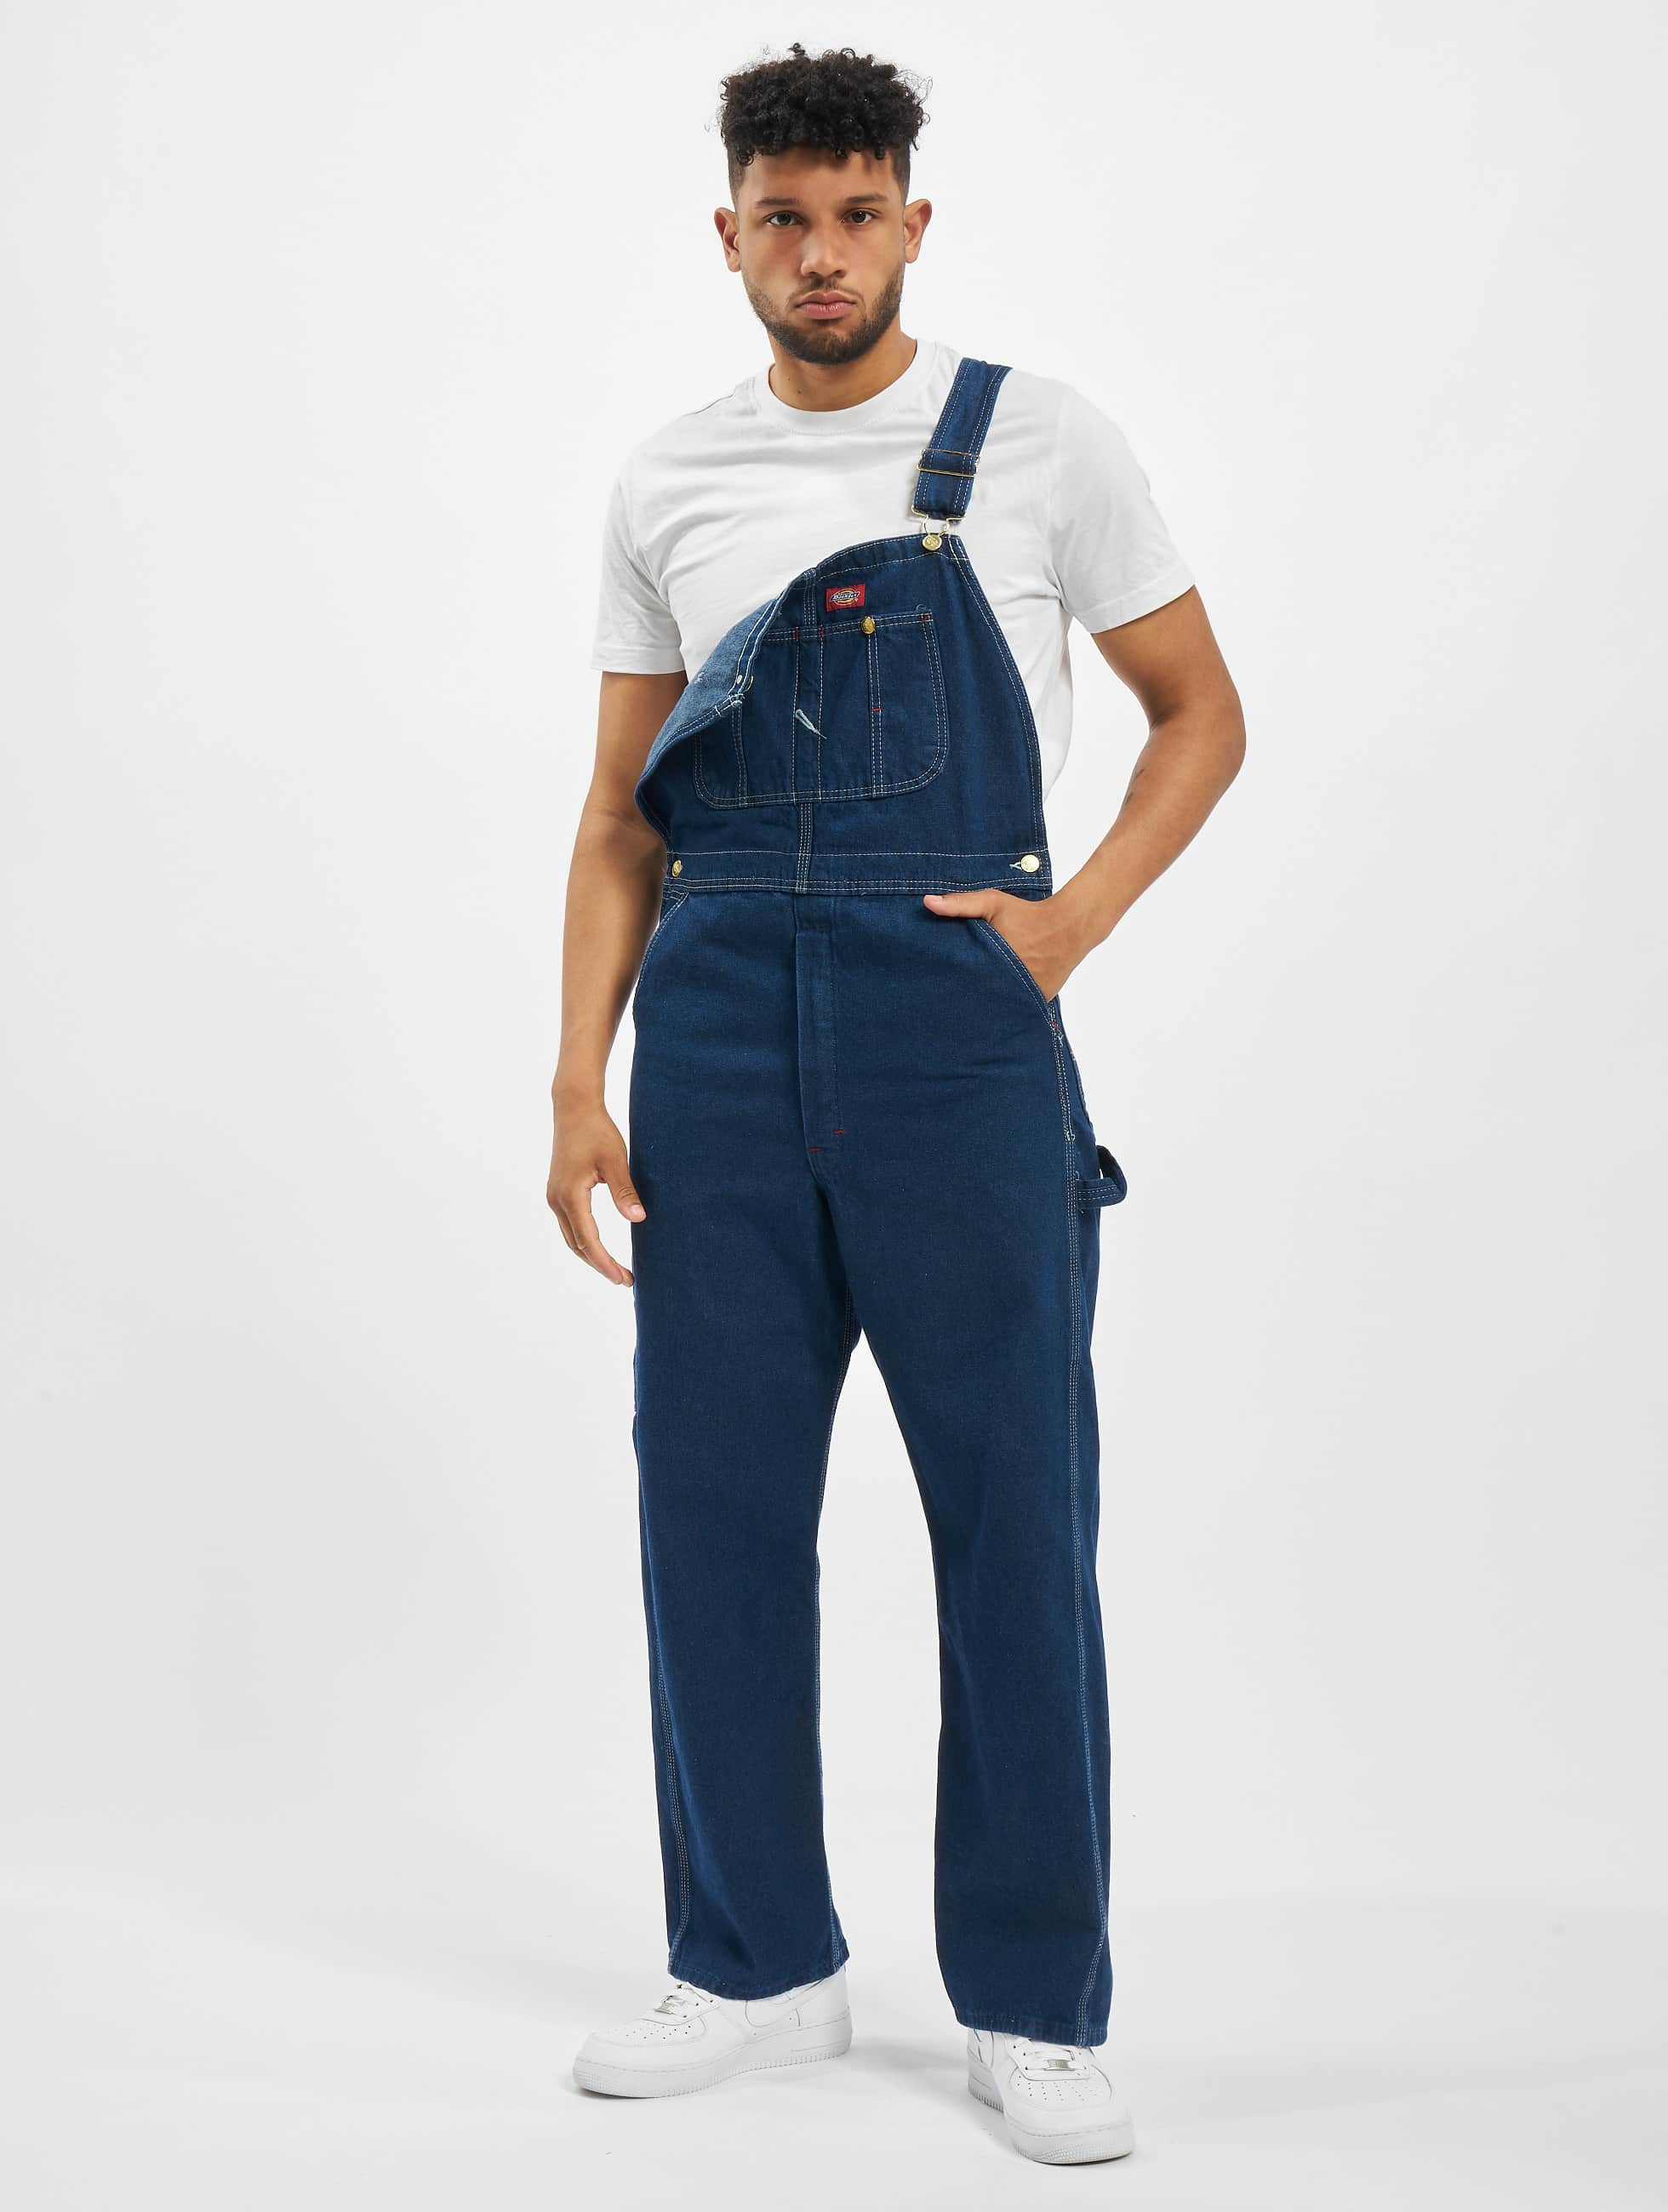 dickies herren jeans loose fit jeans bib overall ebay. Black Bedroom Furniture Sets. Home Design Ideas